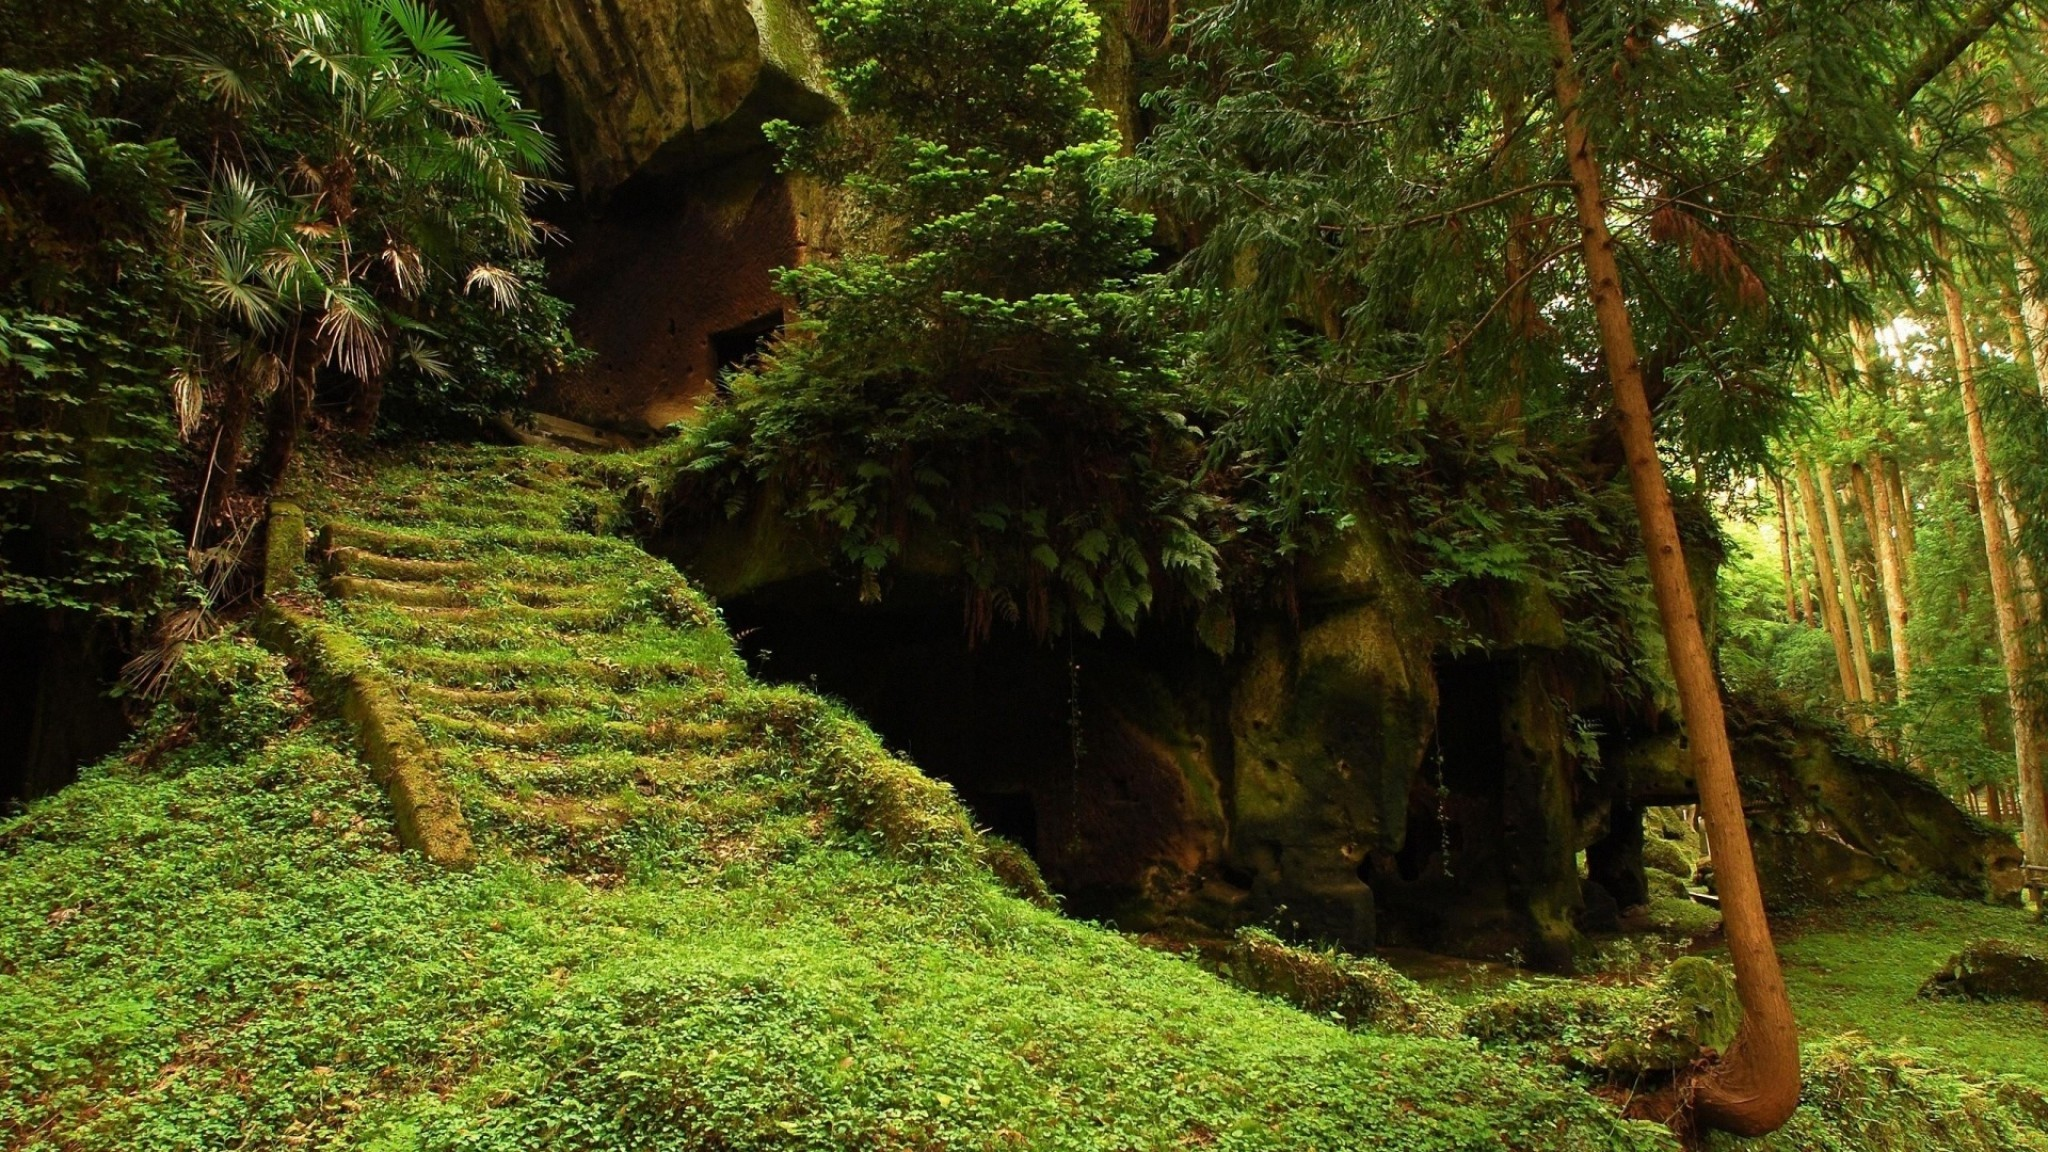 2048x1152 Preview wallpaper cave, moss, bushes, stairs, steps, vegetation, humidity